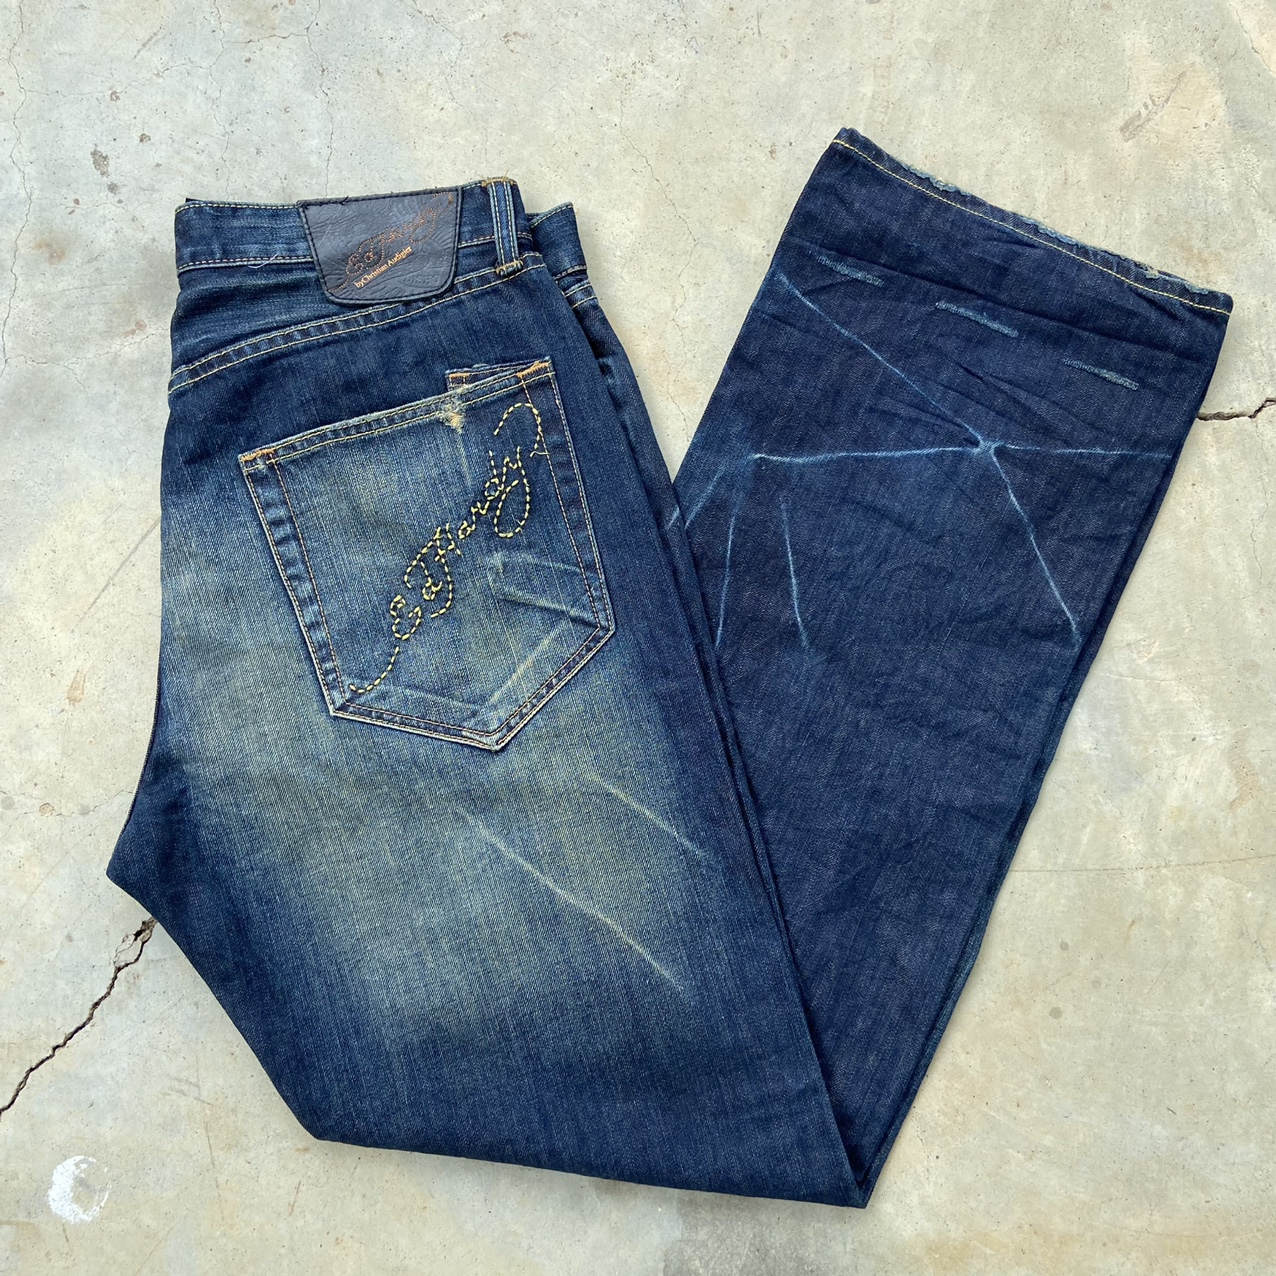 Product Image 1 - Very cool early 2000s distressed